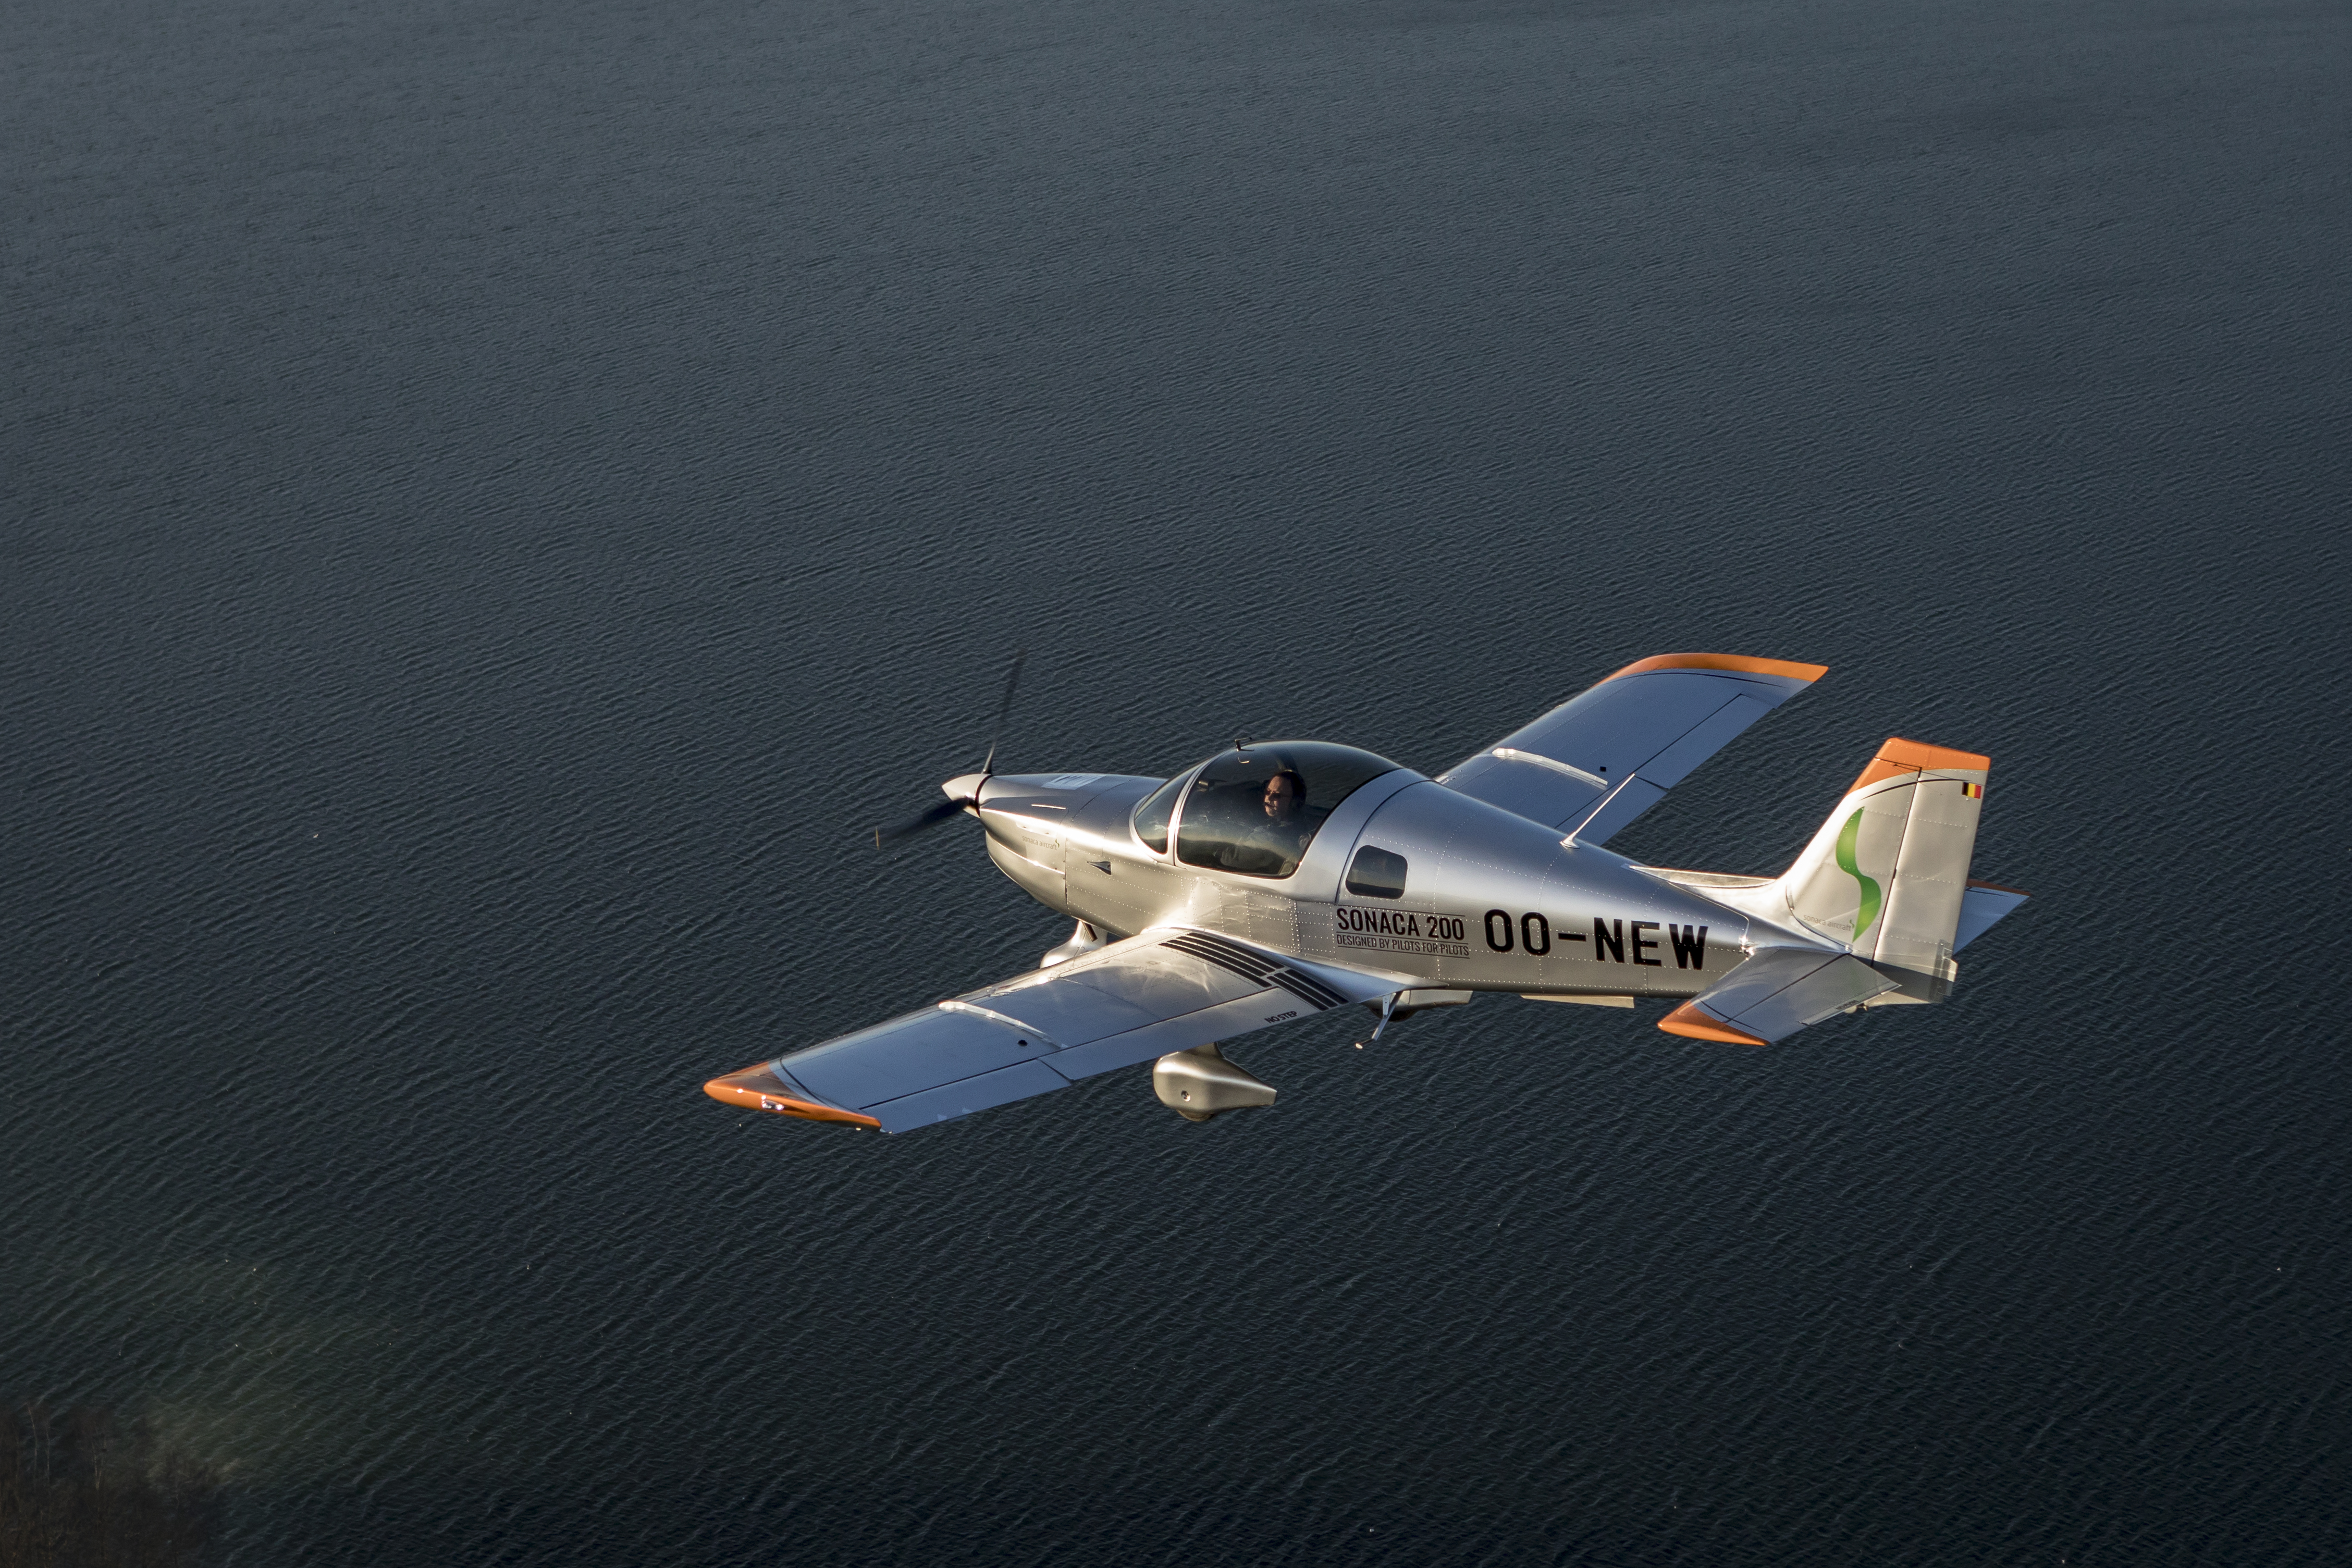 Ayjet Has Signed A Purchase Agreement For 6 Sonaca 200 Aircraft